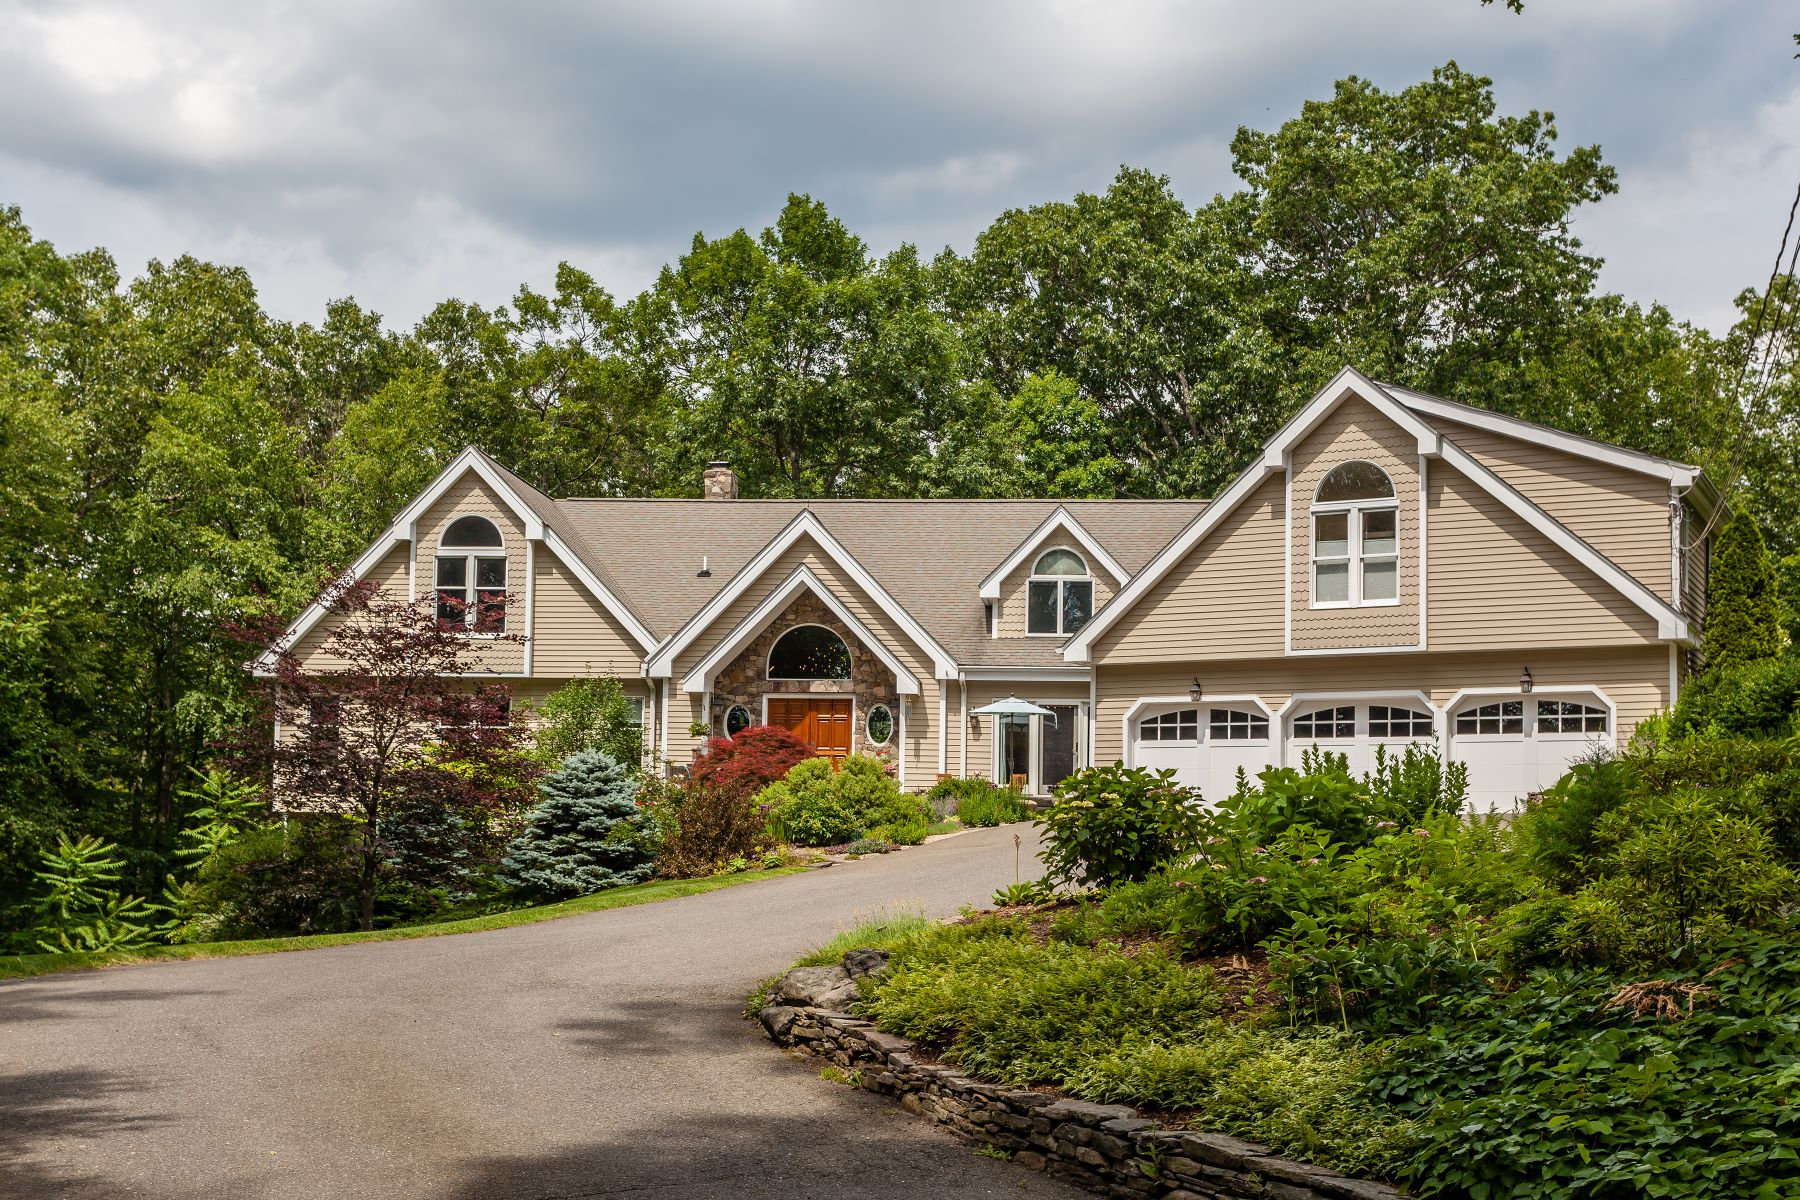 Single Family Home for Sale at Beautiful Contemporary Colonial in Lake Community 12 Chestnut Hill Road Sherman, Connecticut 06784 United States